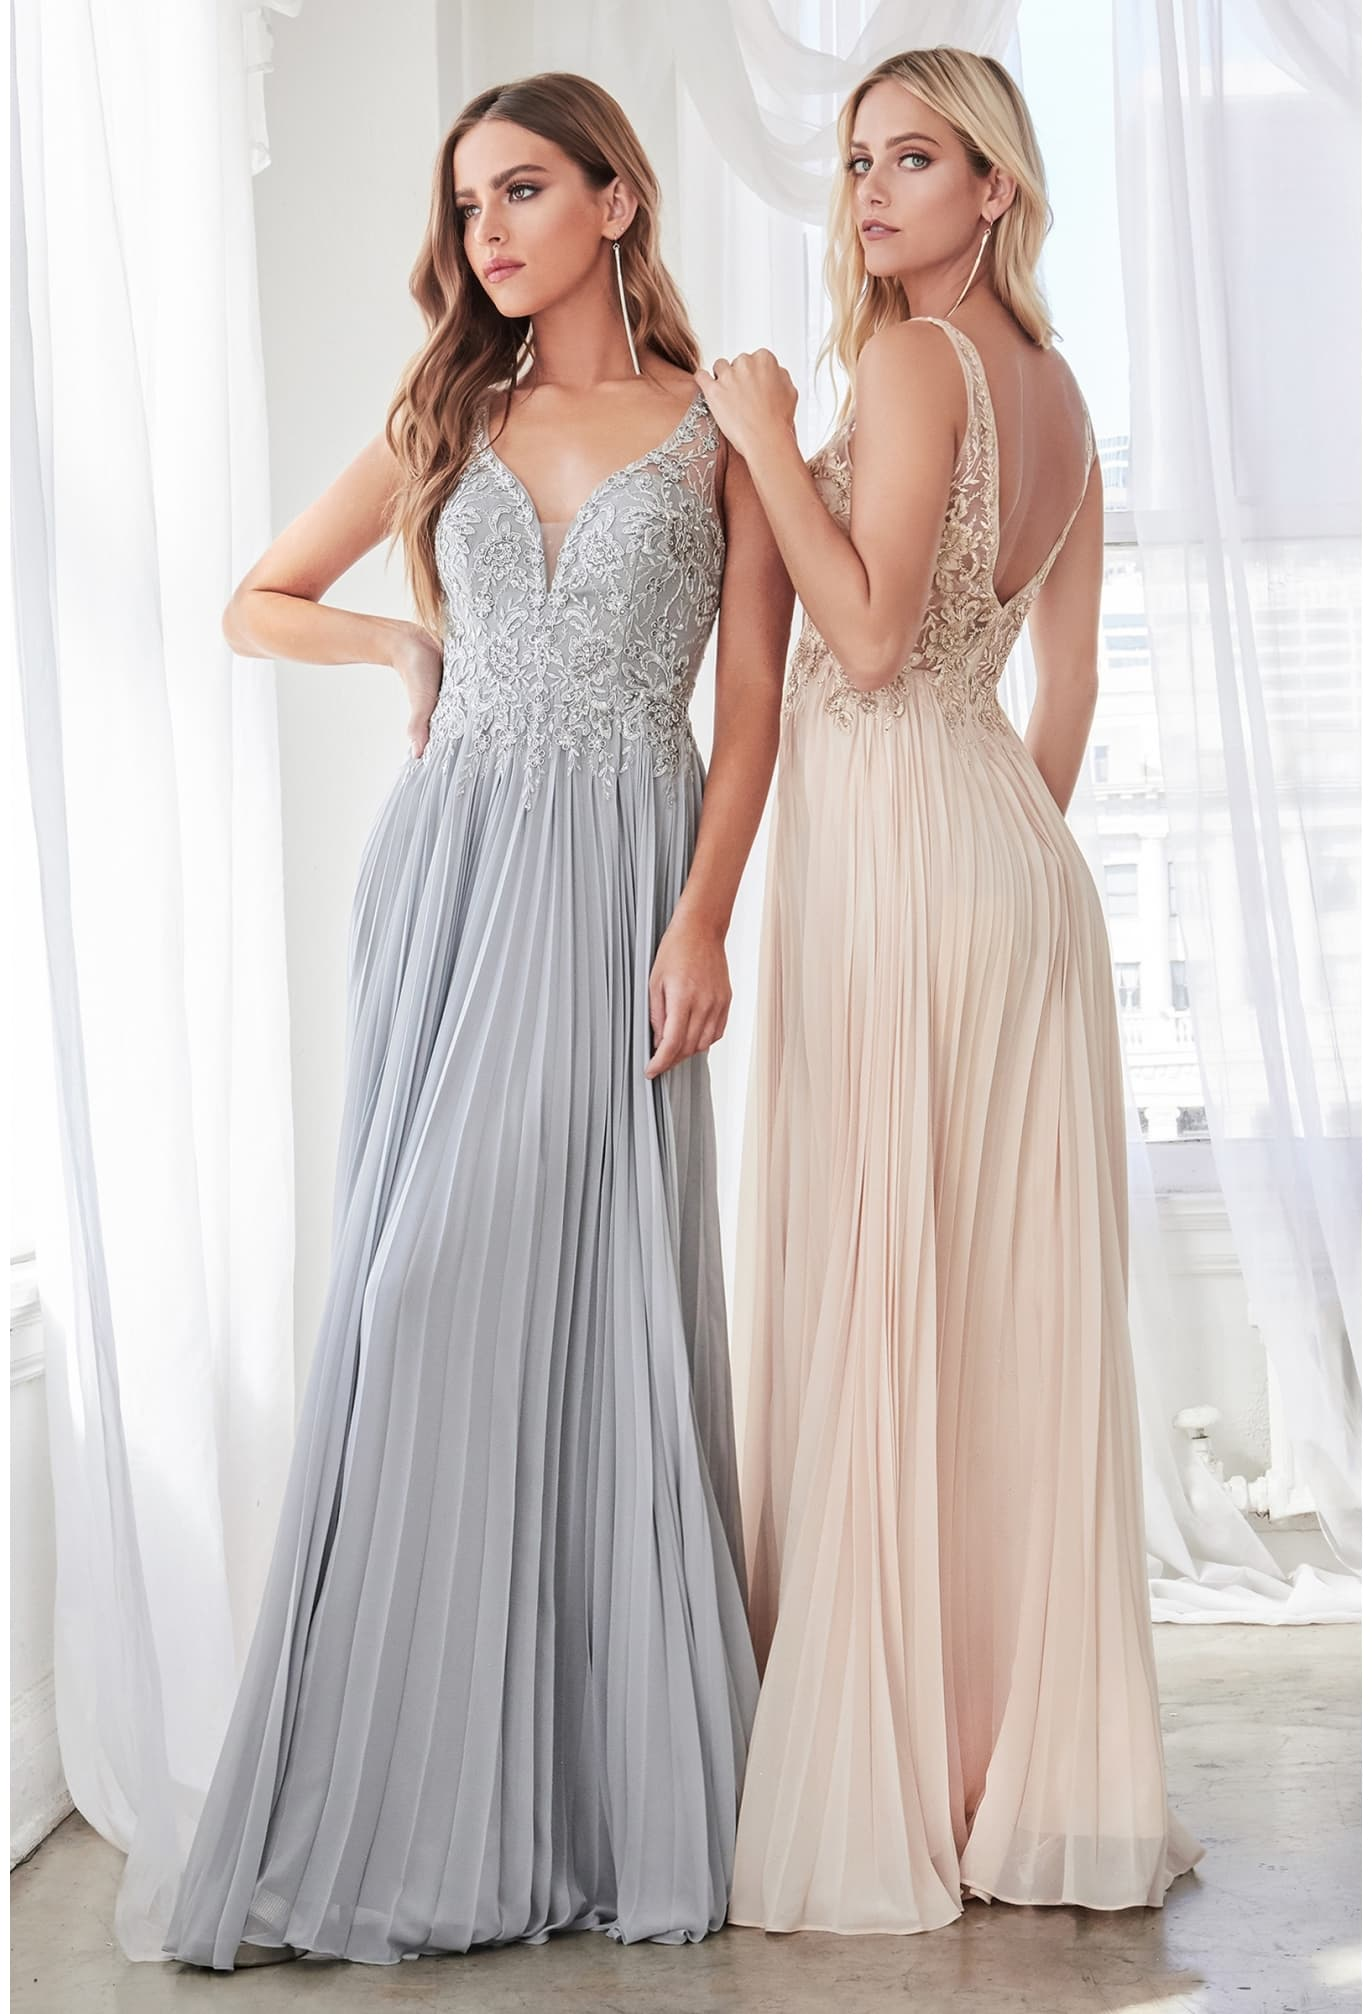 Bridesmaid dresses for every woman from size xxs to 8X.